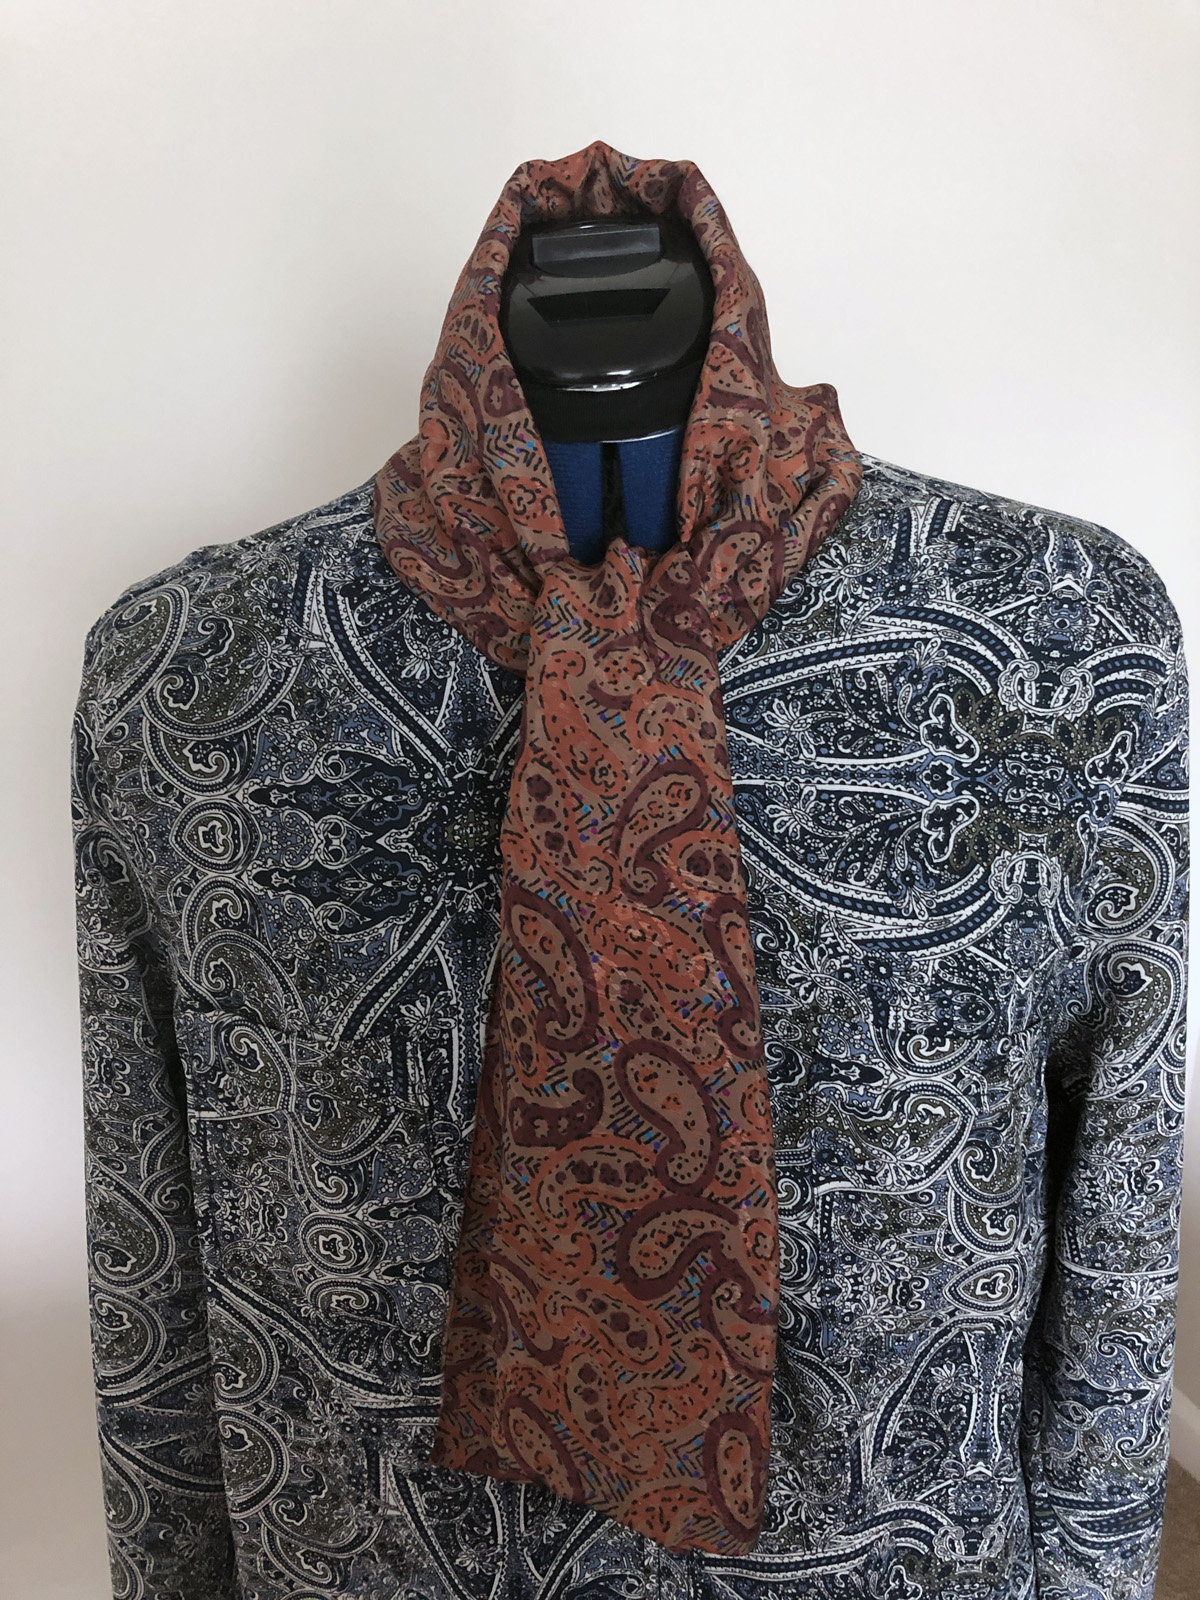 Reddish-brown print fabric wrapped at neckline of blue paisley blouse on dress form